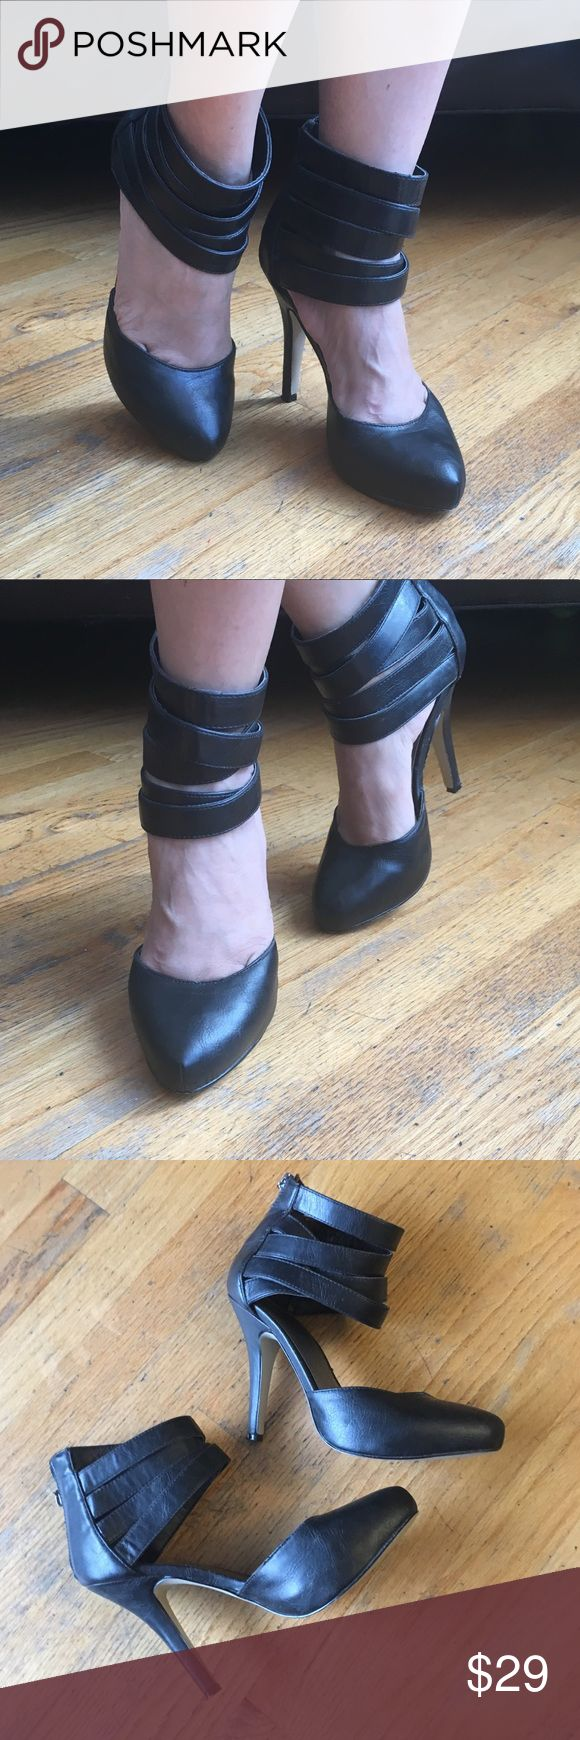 """Guess Heels Super Cute Heels. With zipper back. In good condition.Heels height approx """"4 1/2"""" in. Size 7 1/2M. Guess Shoes Heels"""